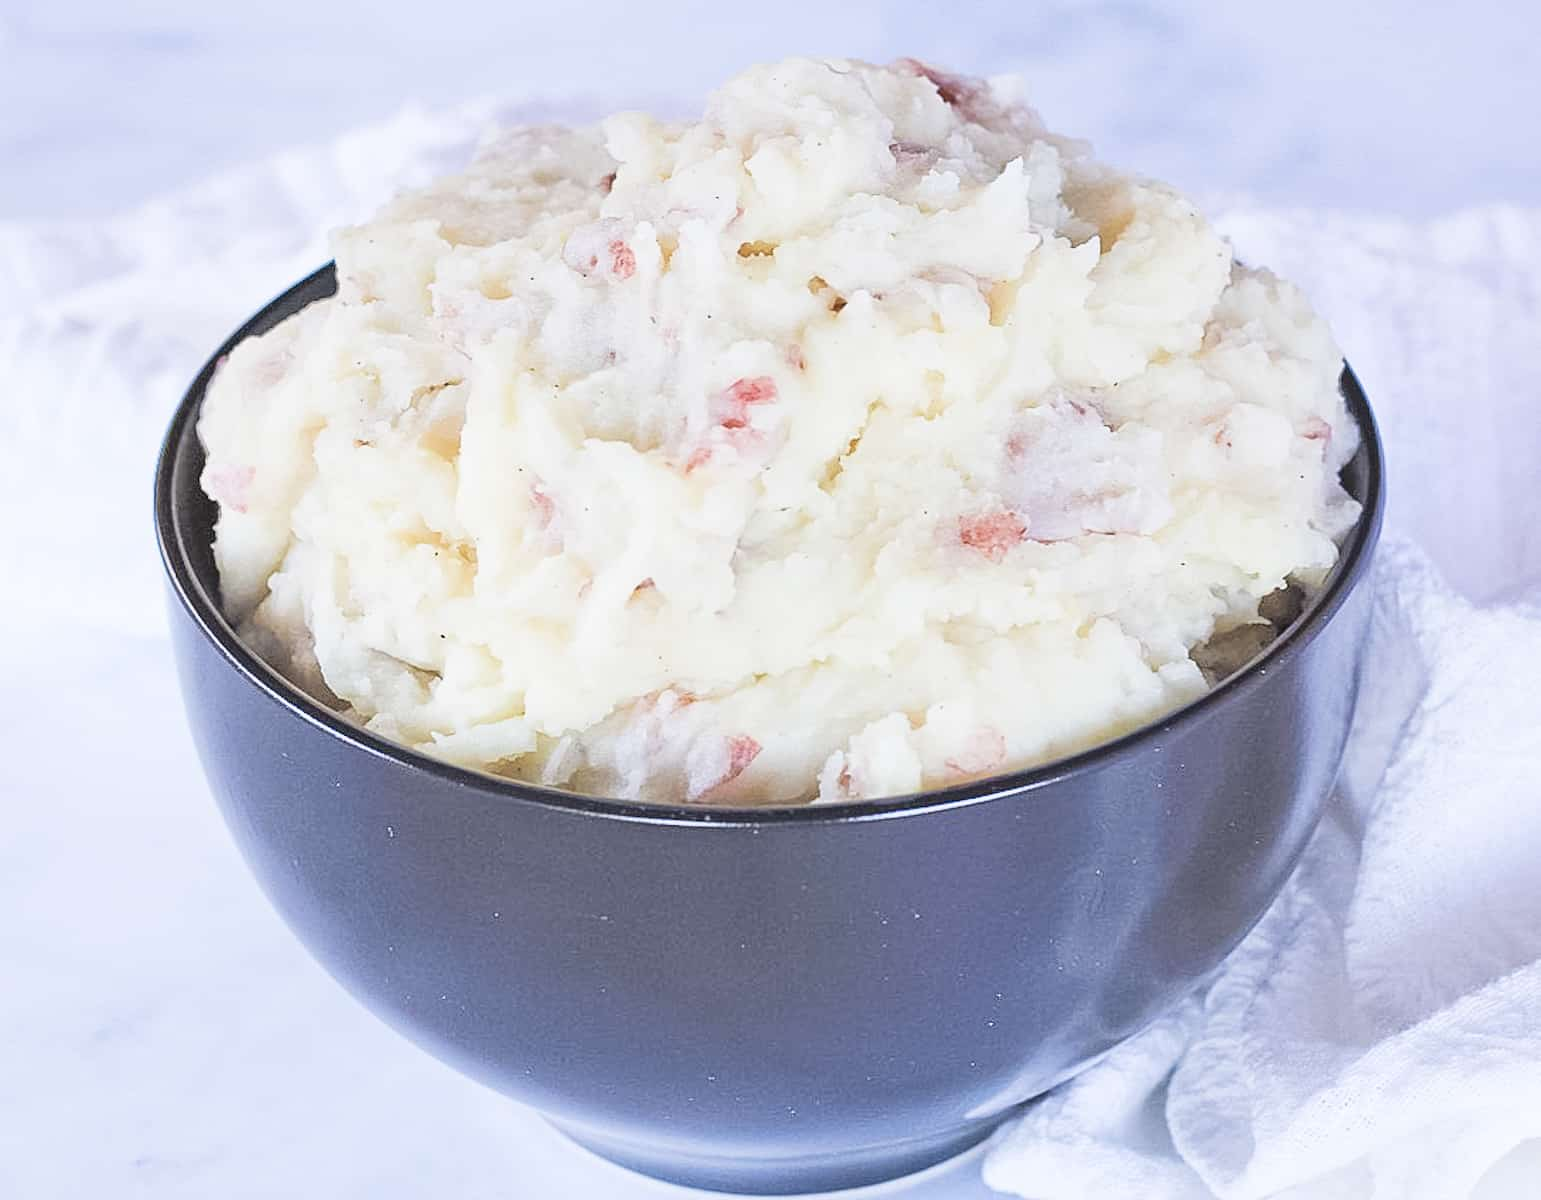 Bowl of creamy mashed potatoes with skins.